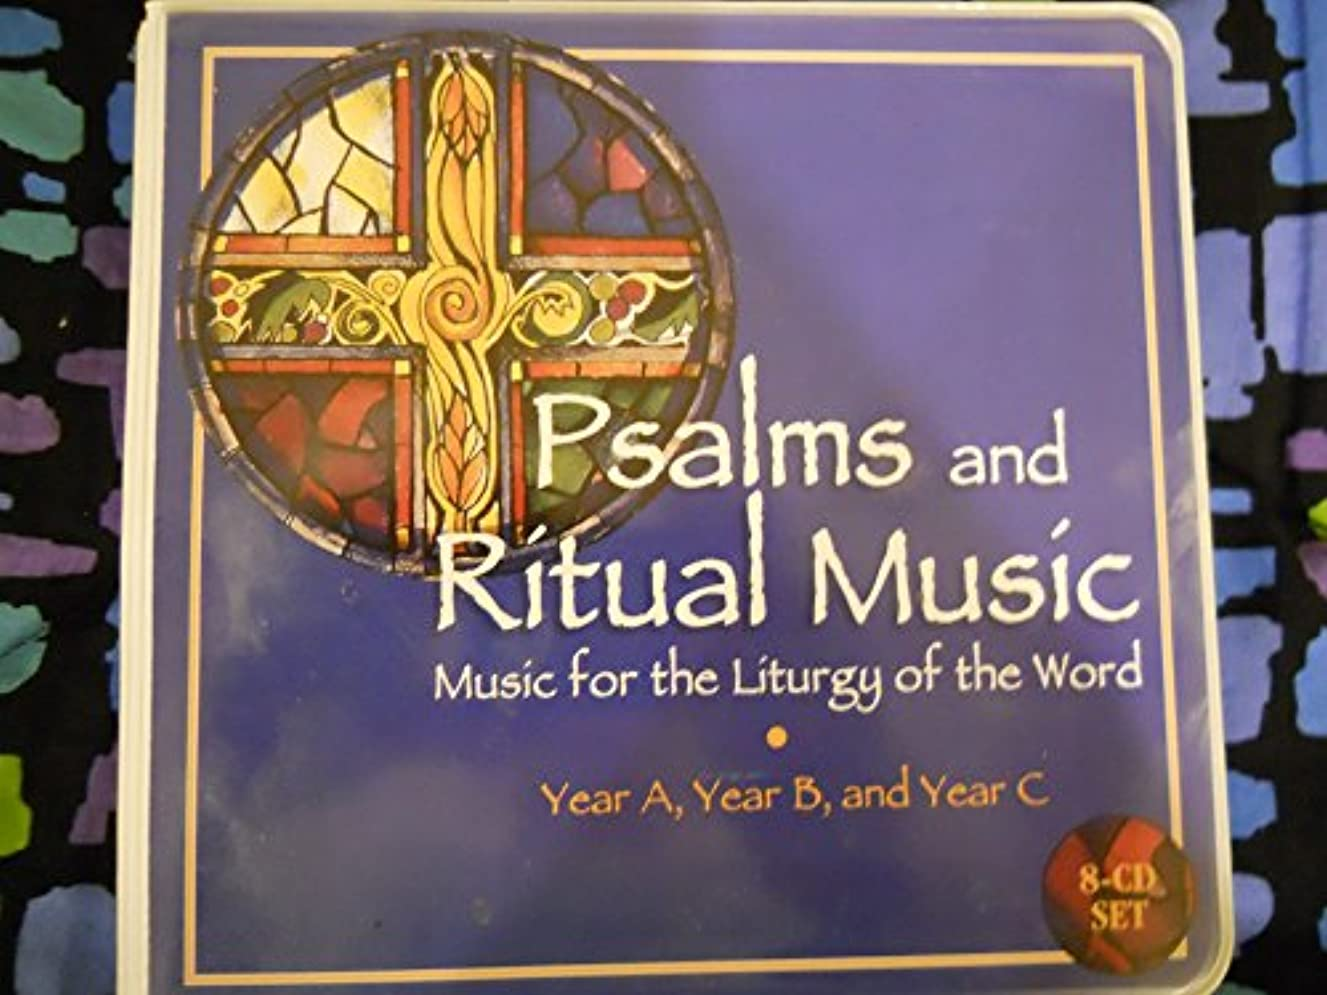 Psalms and Ritual Music: Music for the Liturgy of the Word Year A,B, and C